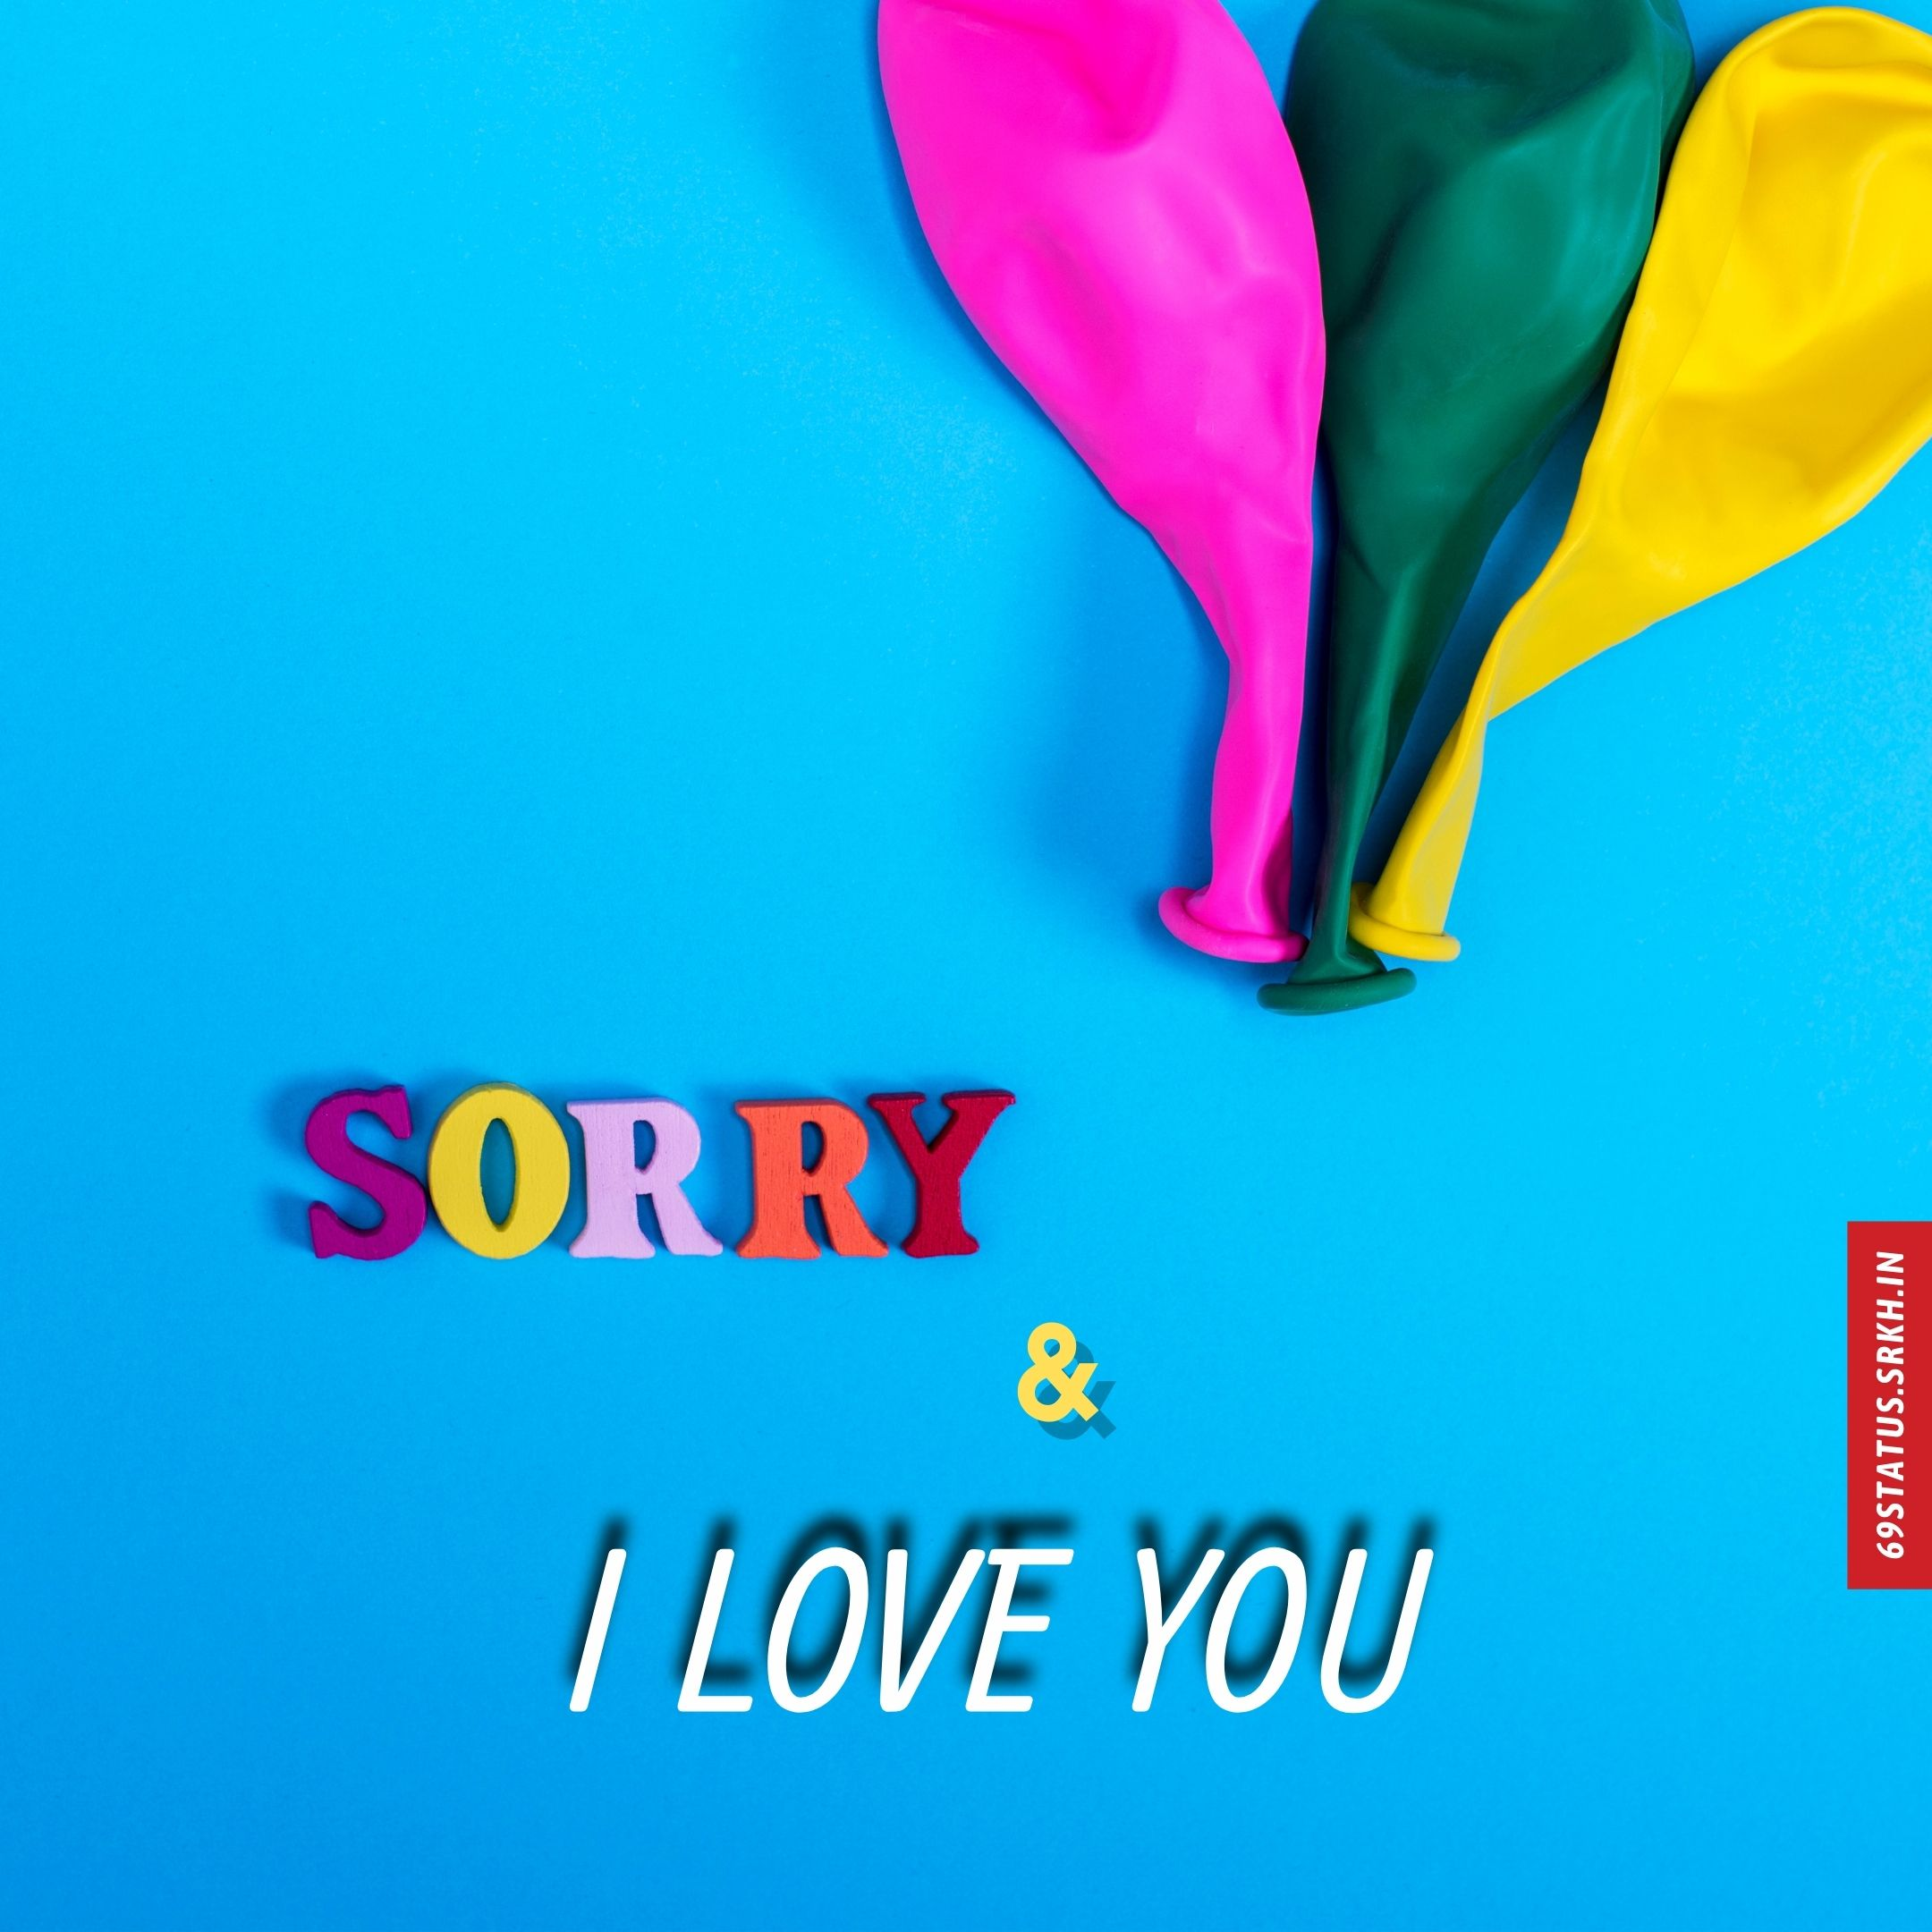 Sorry I Love You images full HD free download.